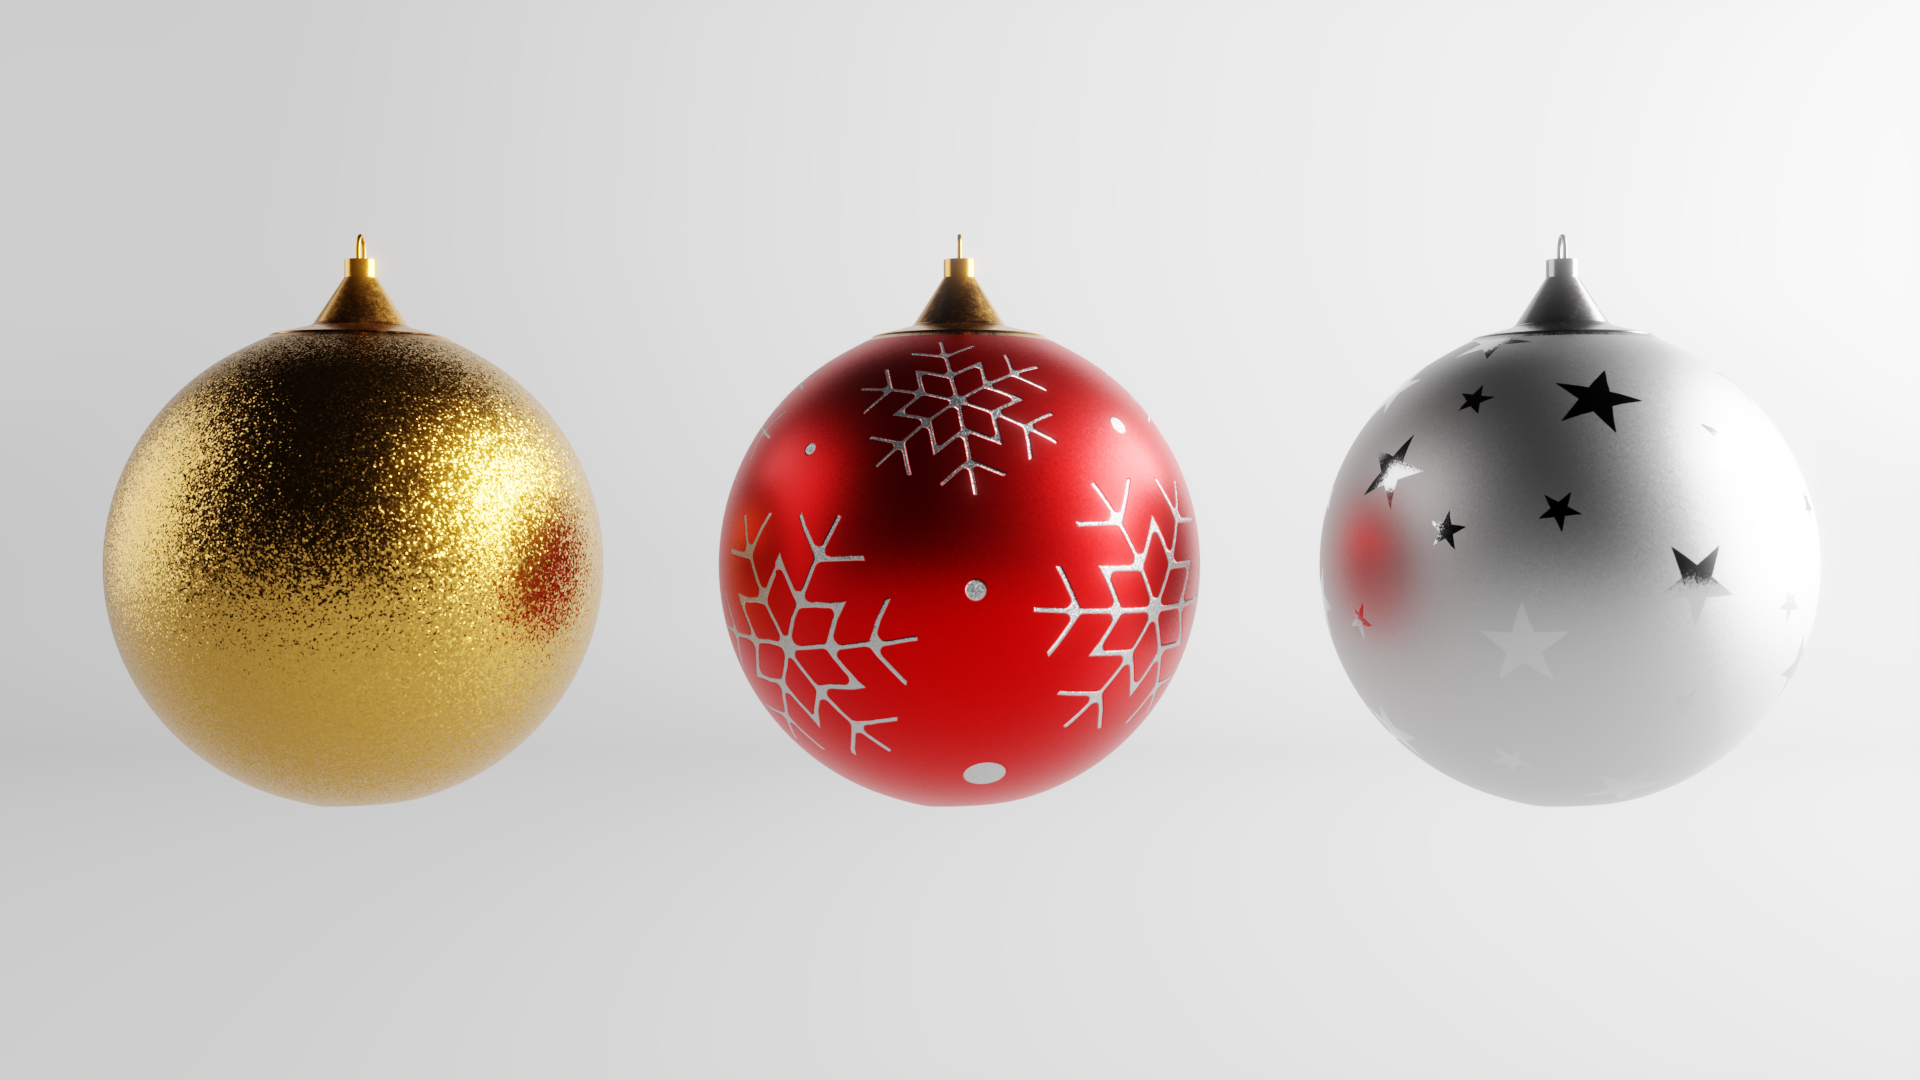 Christmas Decoration Assets Christmas Decorations Christmas Christmas Balls